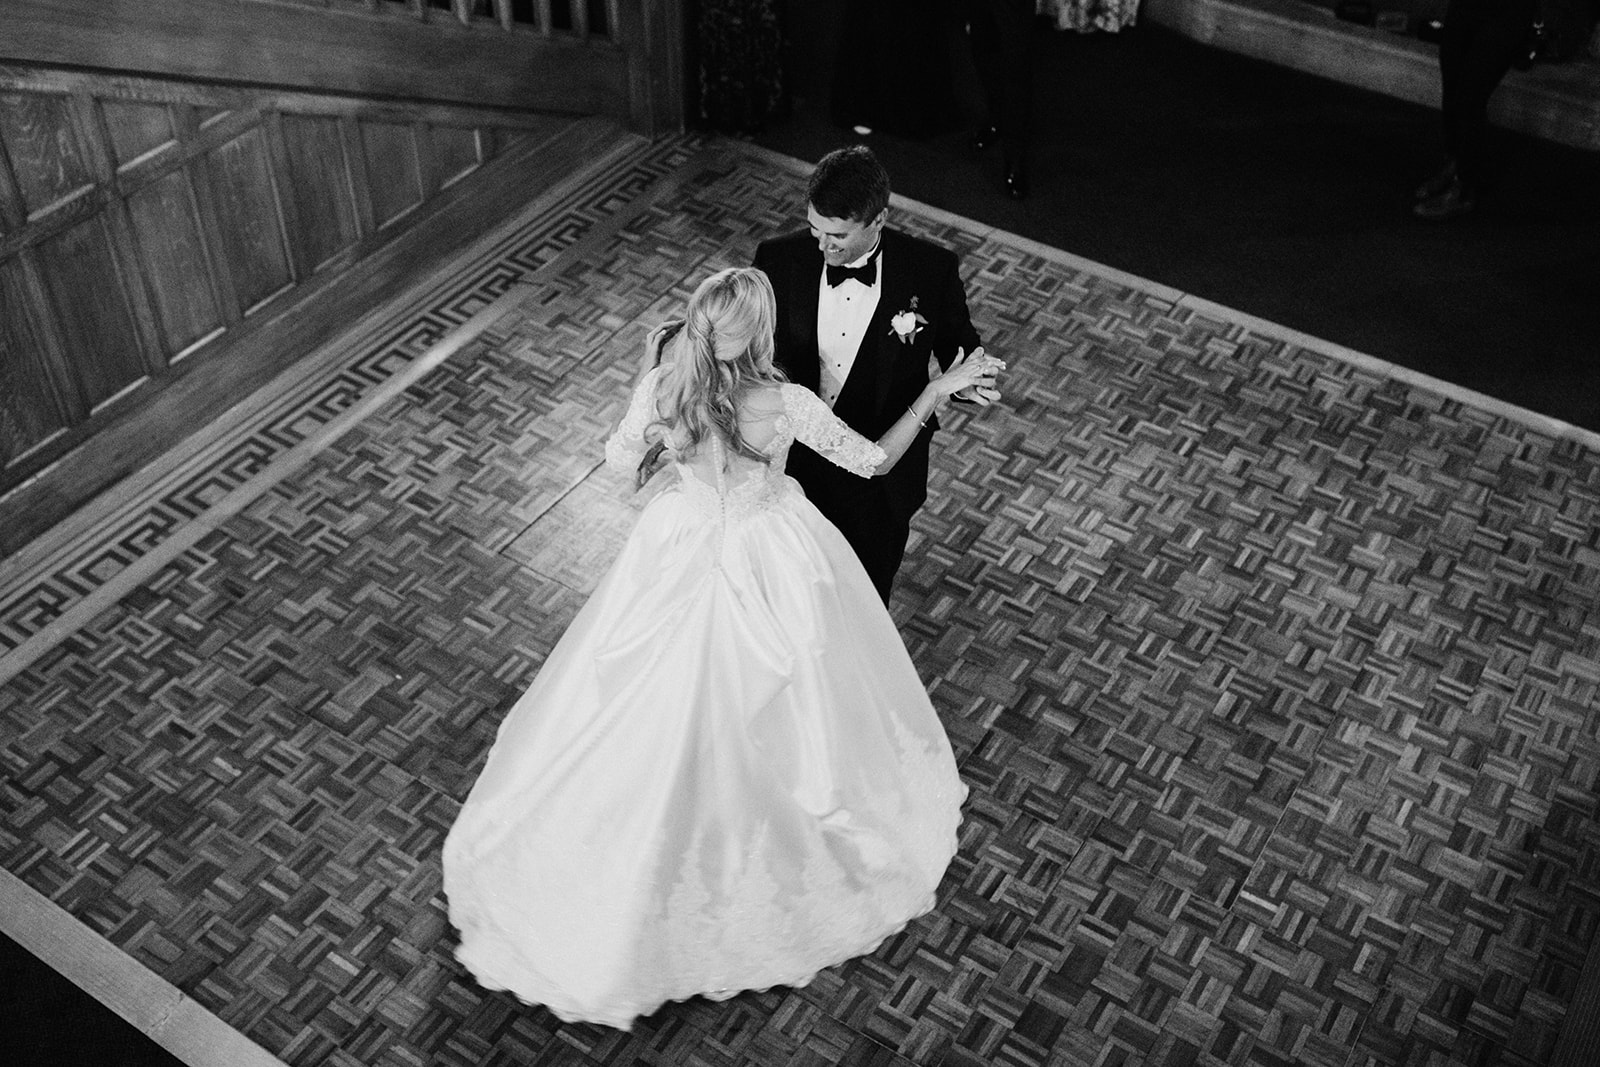 Hatley Castle Wedding - Victoria Wedding Photographer Kim Jay-73.jpg